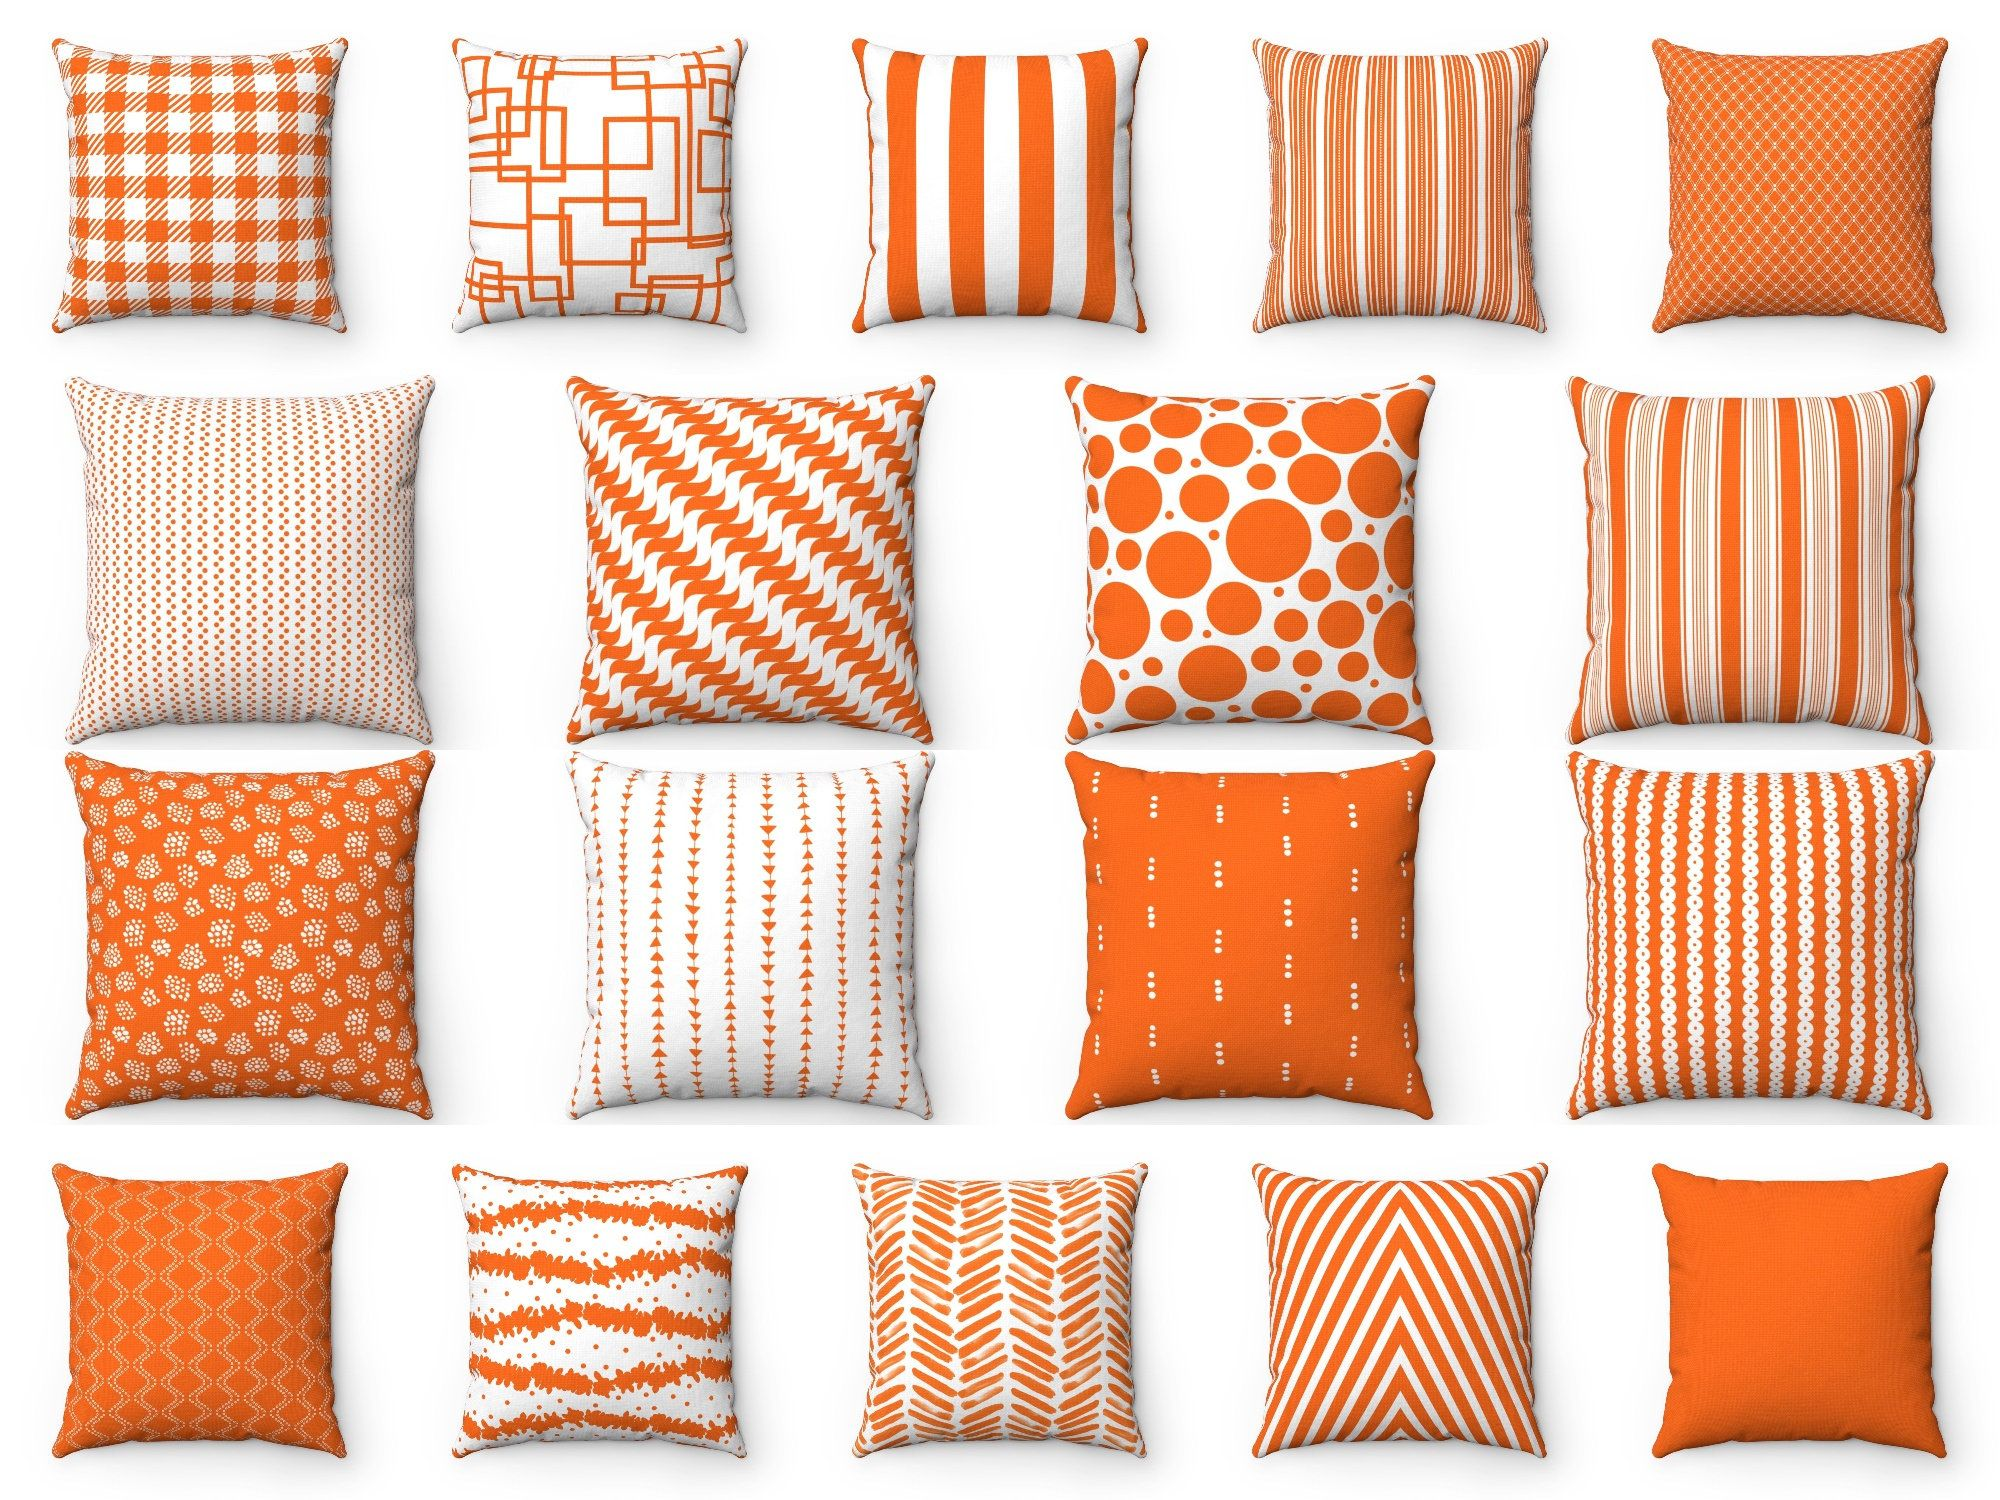 Fall Decorative Pillow Covers